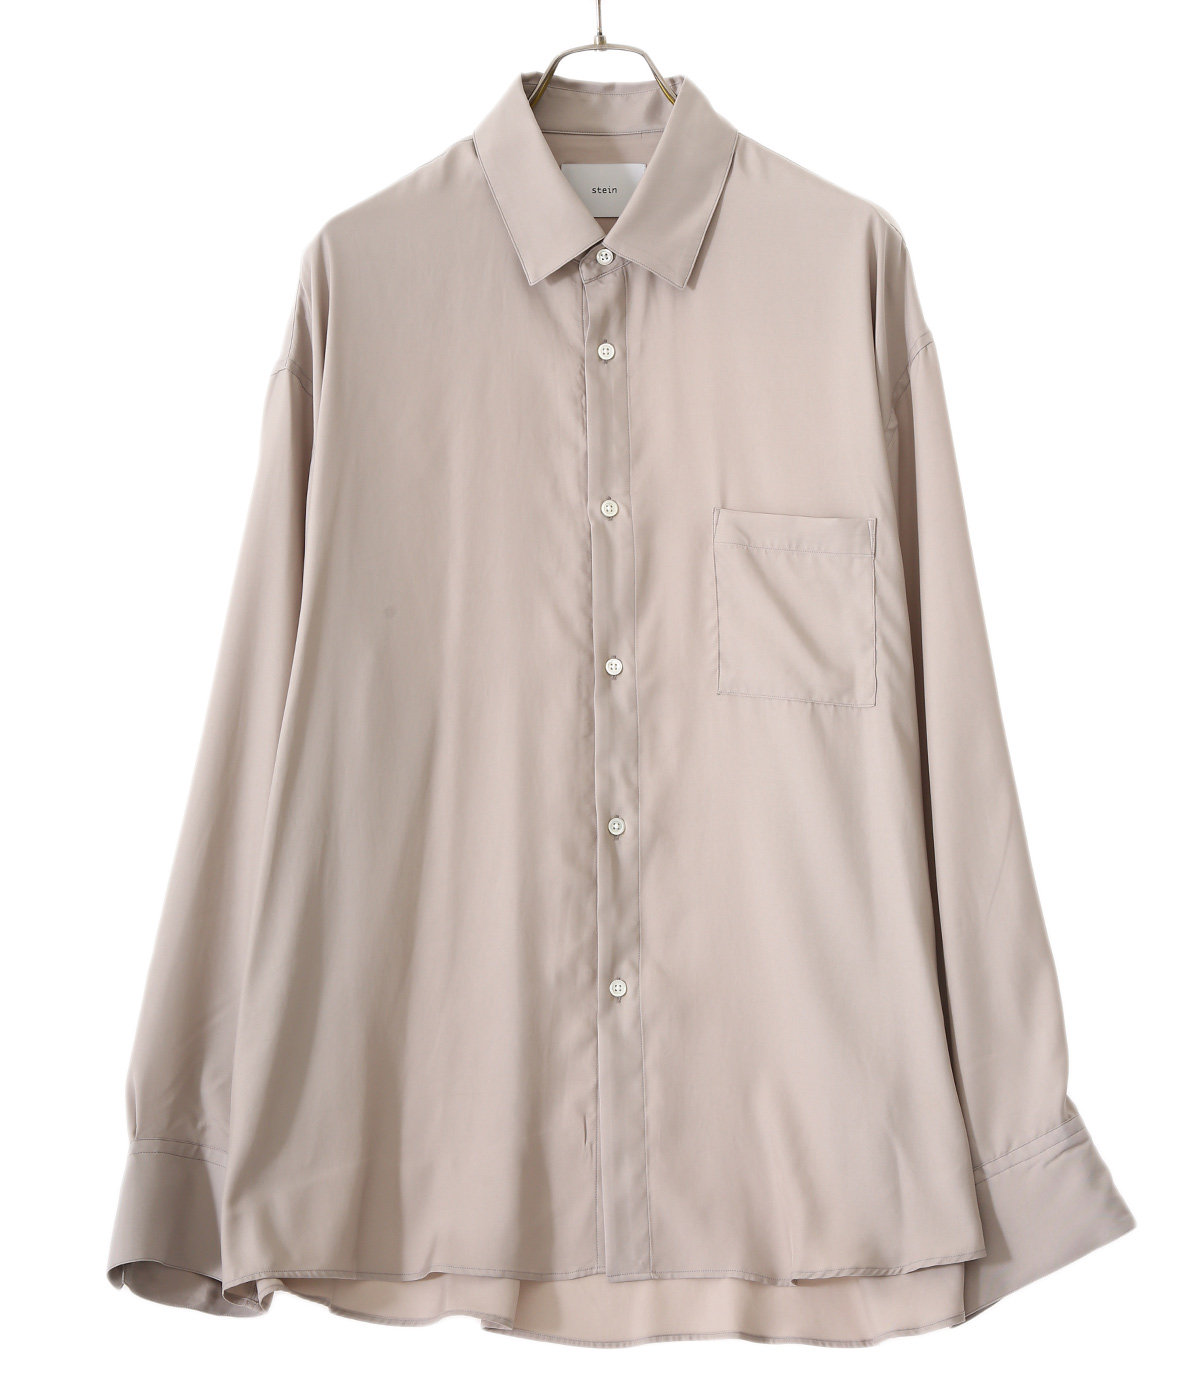 OVERSIZED DOWN PAT CUPRO SHIRT